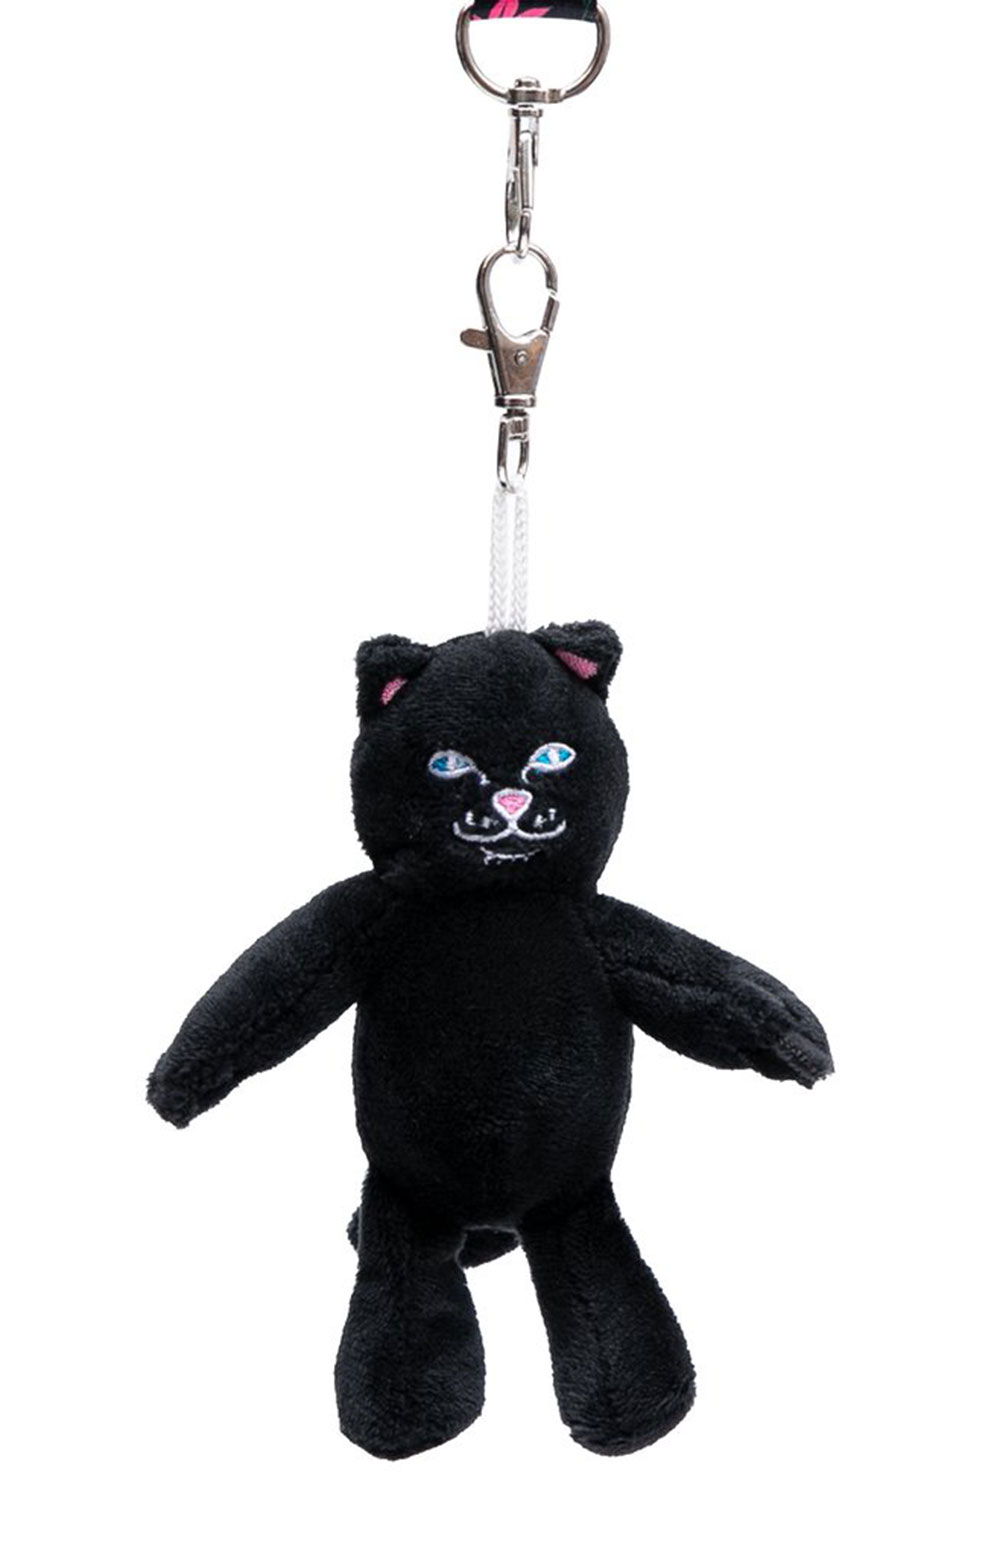 Lord Jermal Plush Keychain